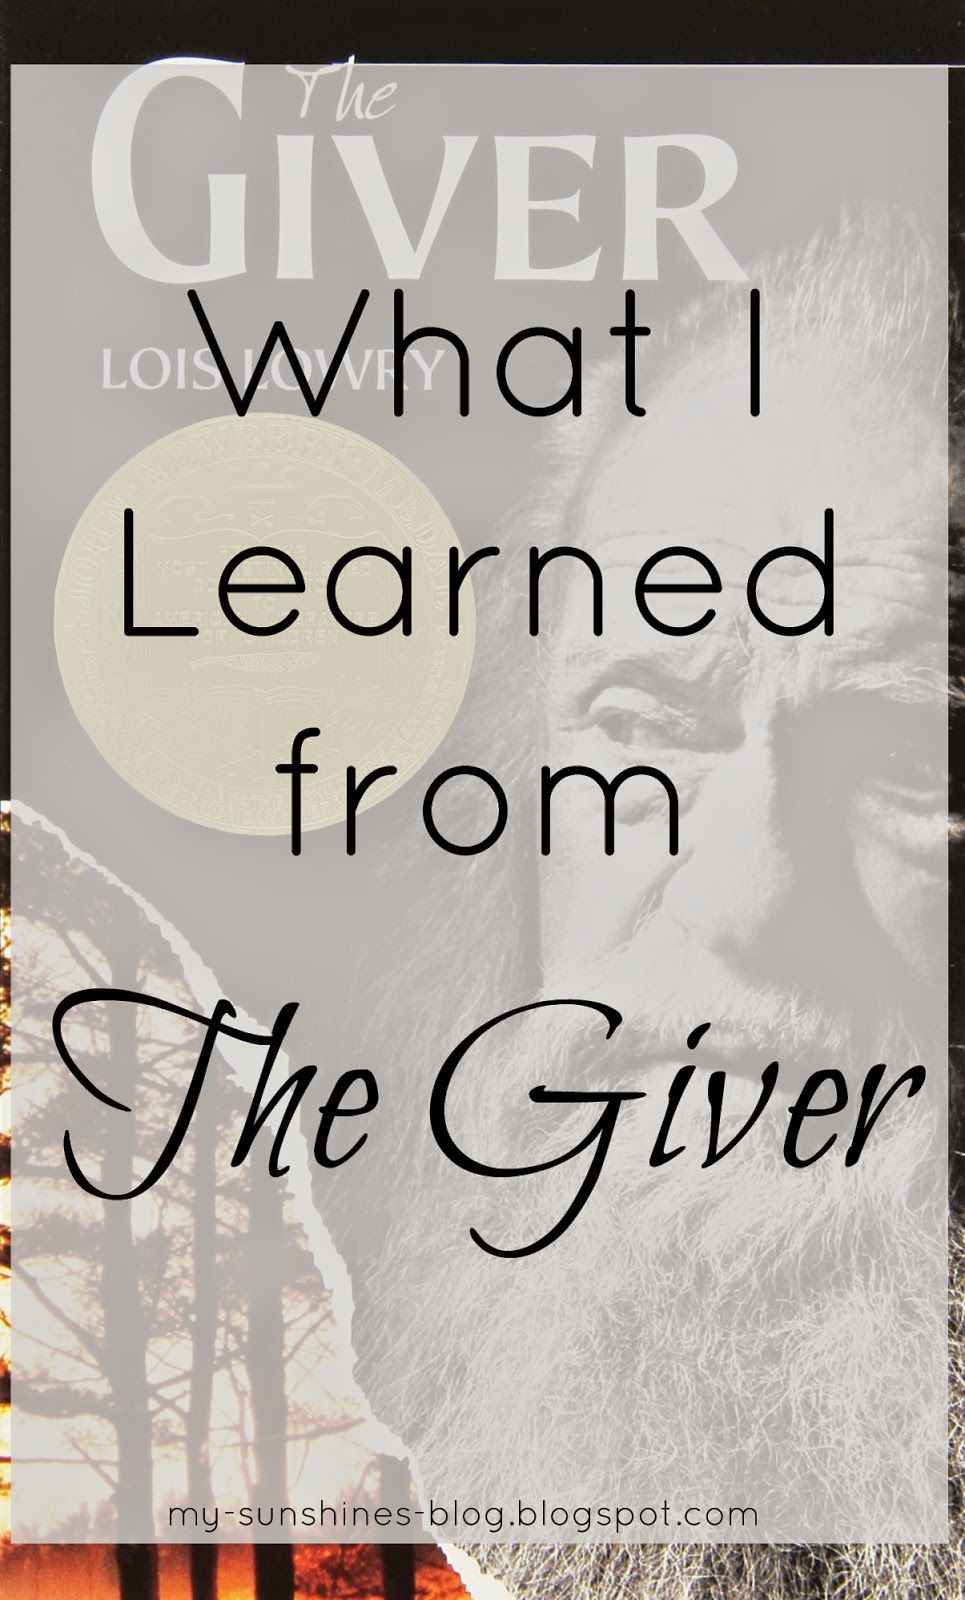 My Little Sunshines: What I Learned from The Giver